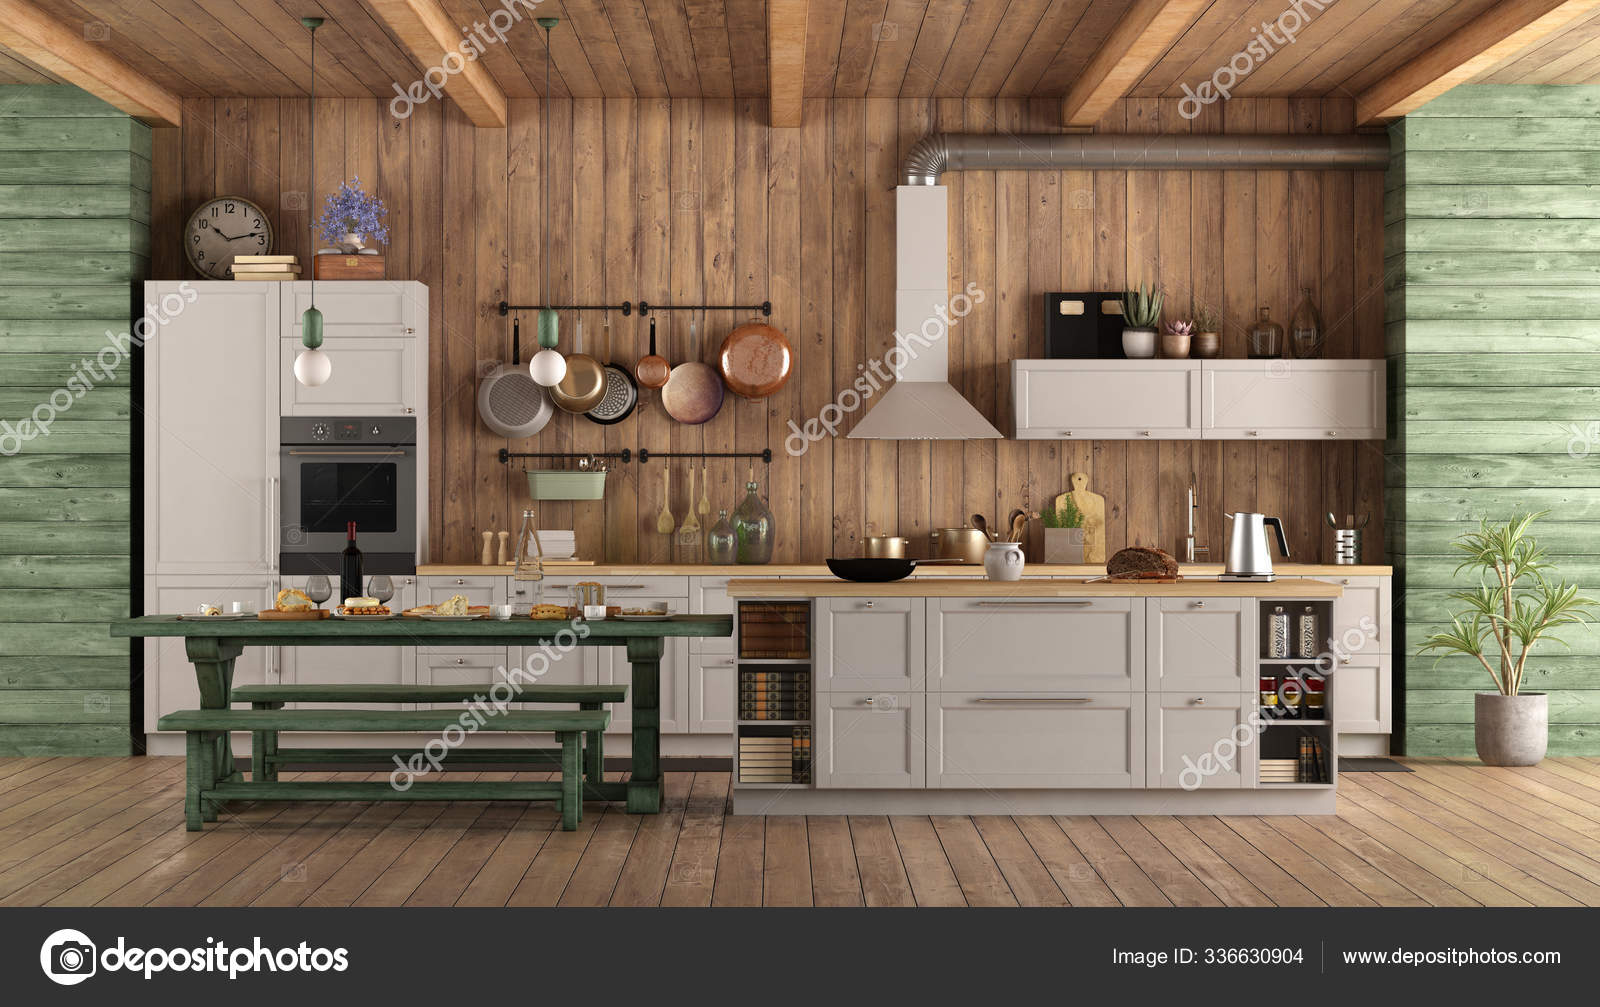 White Green Retro Kitchen Island Dining Table Bench Rendering Stock Photo C Panthermediaseller 336630904